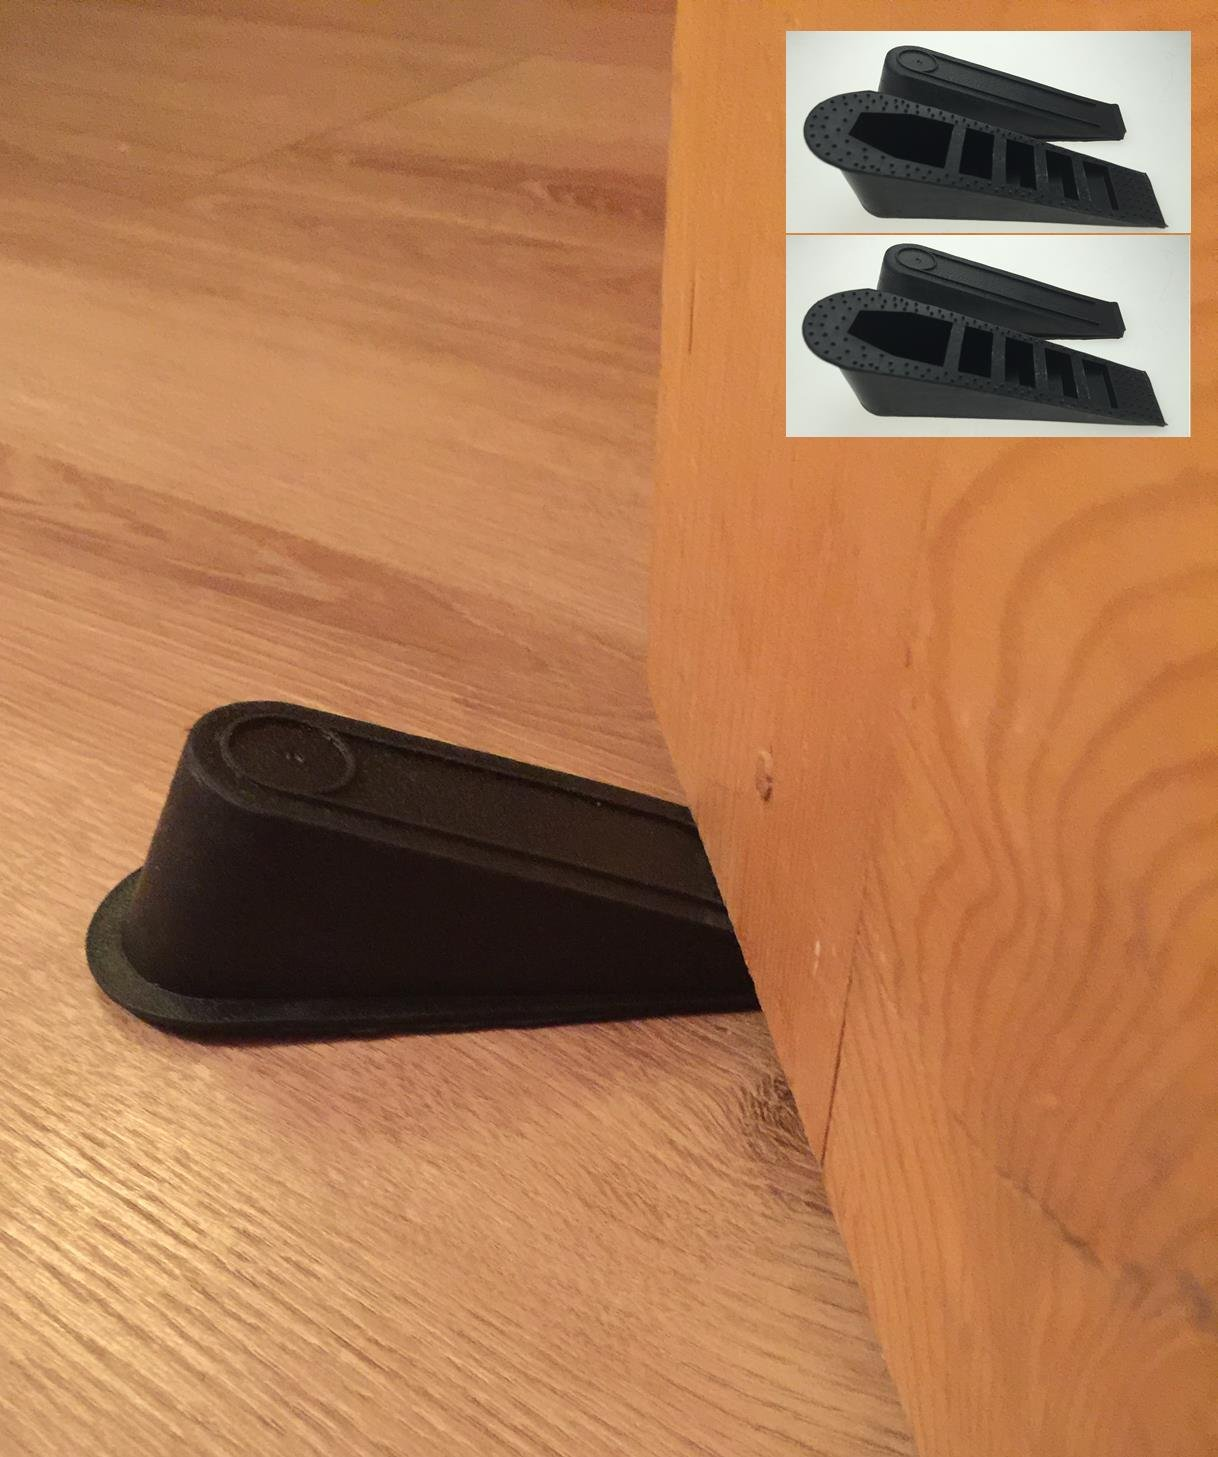 Orion 4 Door Kitchen Pantry 4 X Orion 100 Malaysian Rubber Door Stopper No Odour No Marks